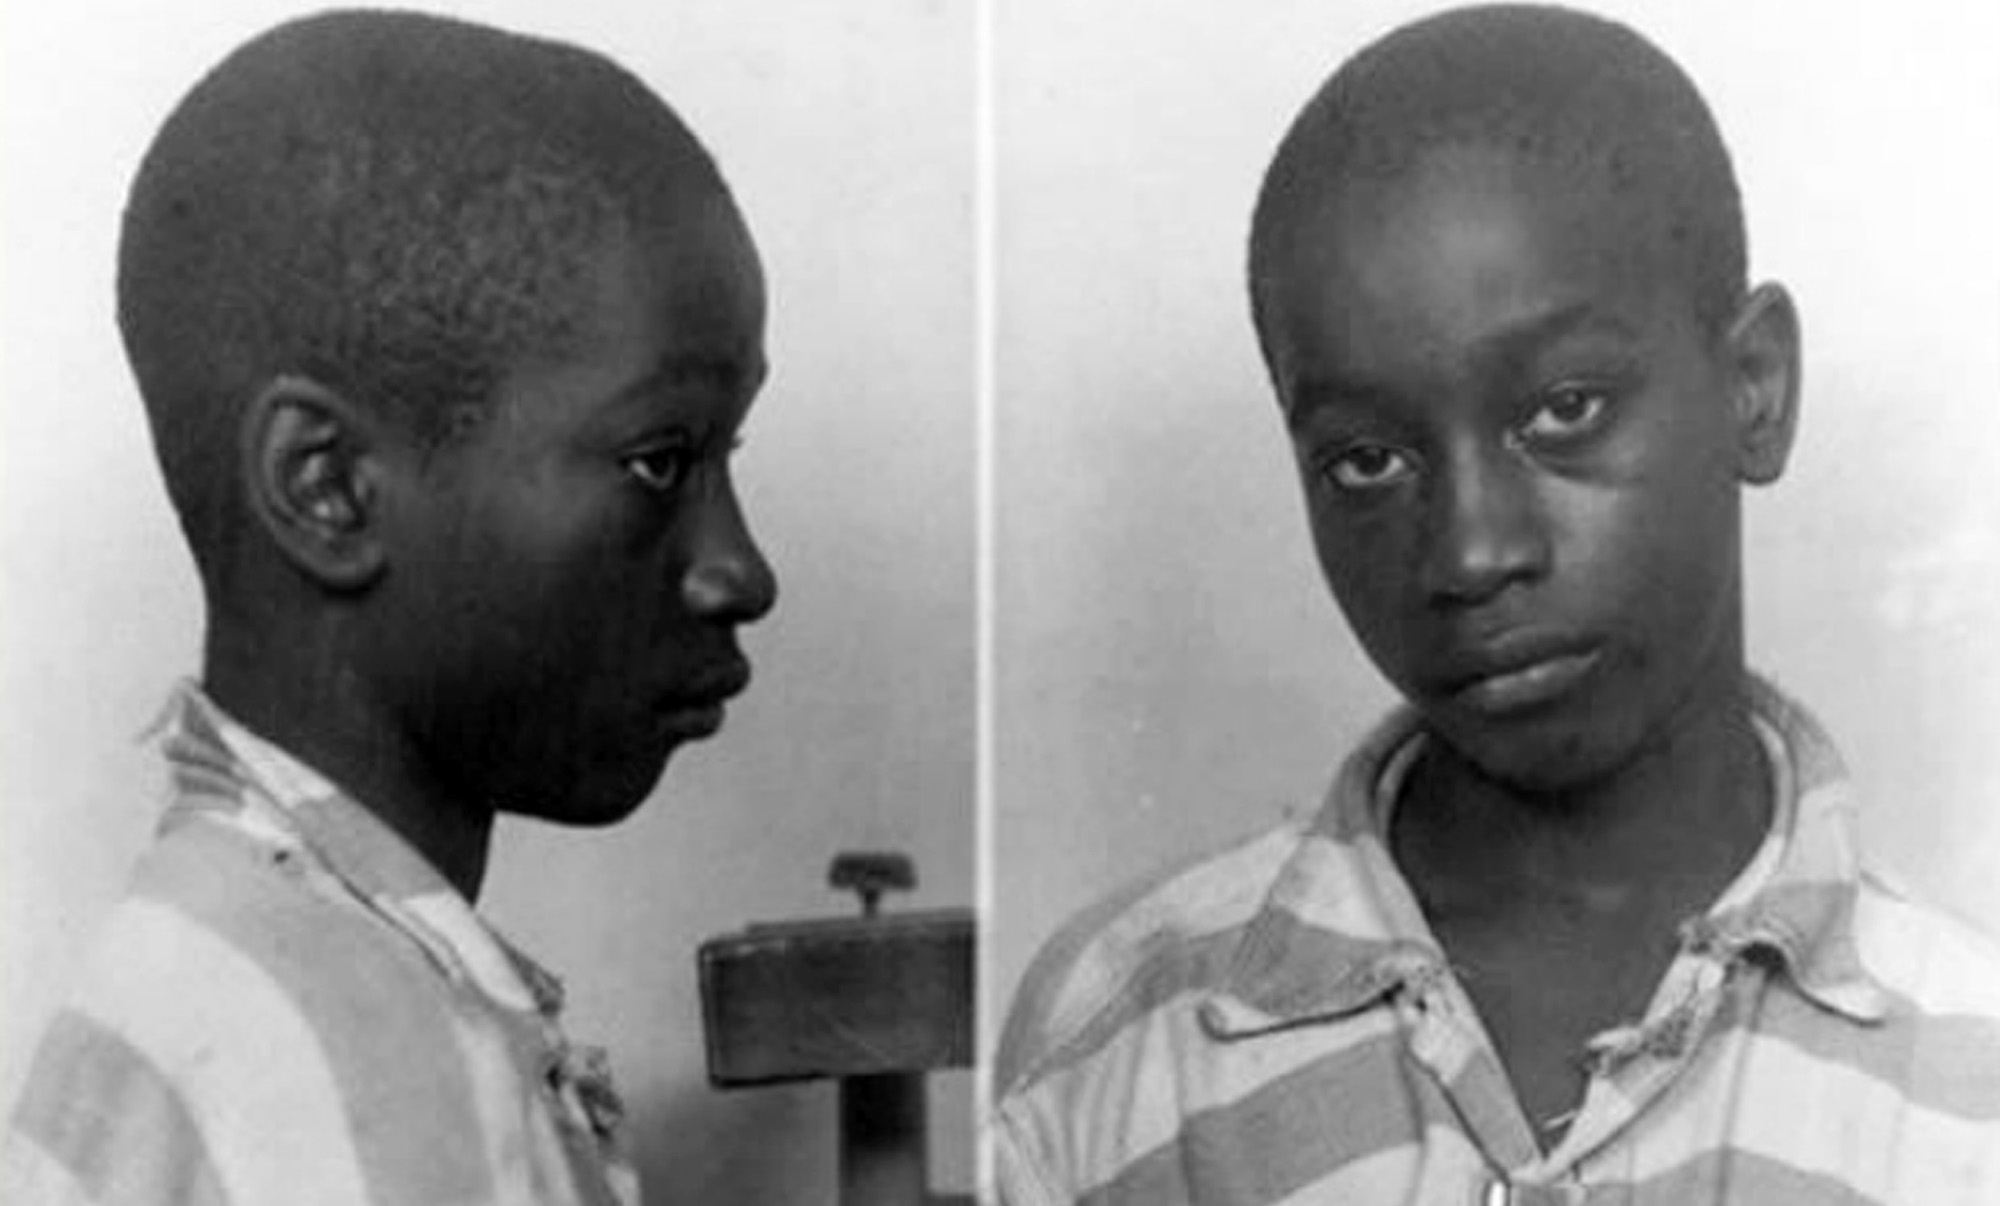 The State That Executed a Black Child Wants to Bring Back the Firing Squad - vice